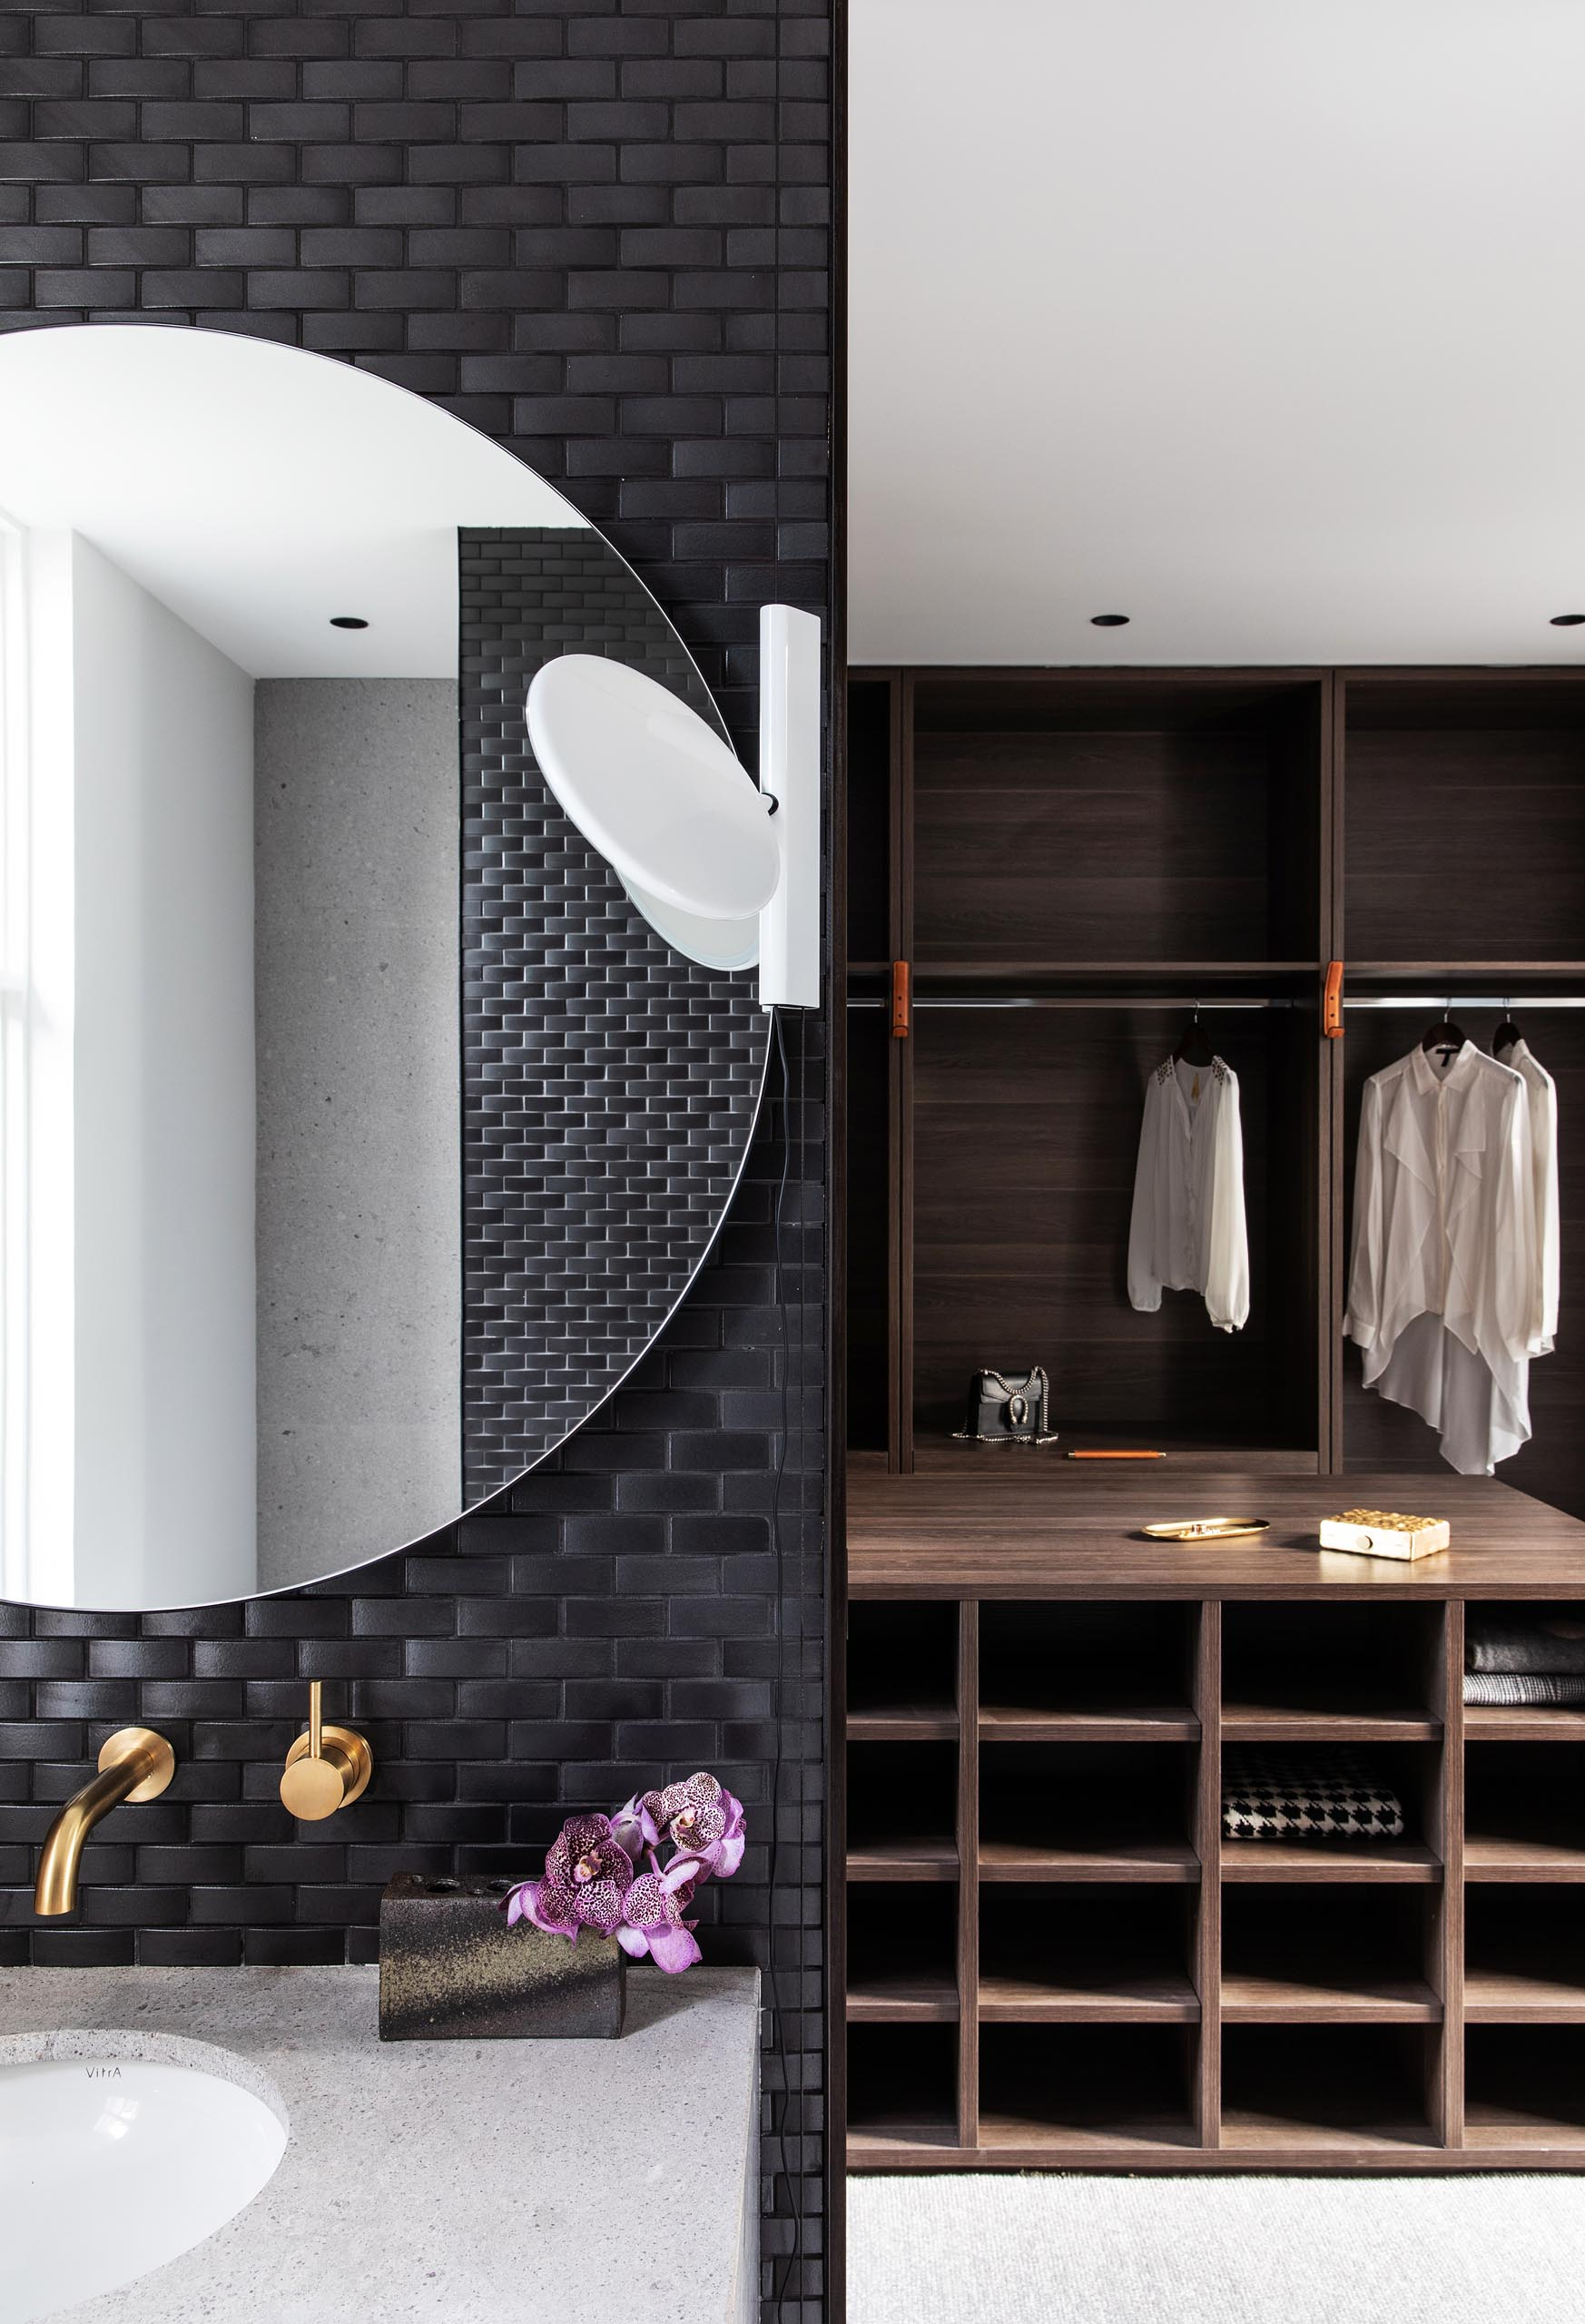 In the master bathroom, black tiles cover walls, while round mirrors hang above white vanities with undermount sinks. There's also a walk-in closet with dark wood cabinetry.